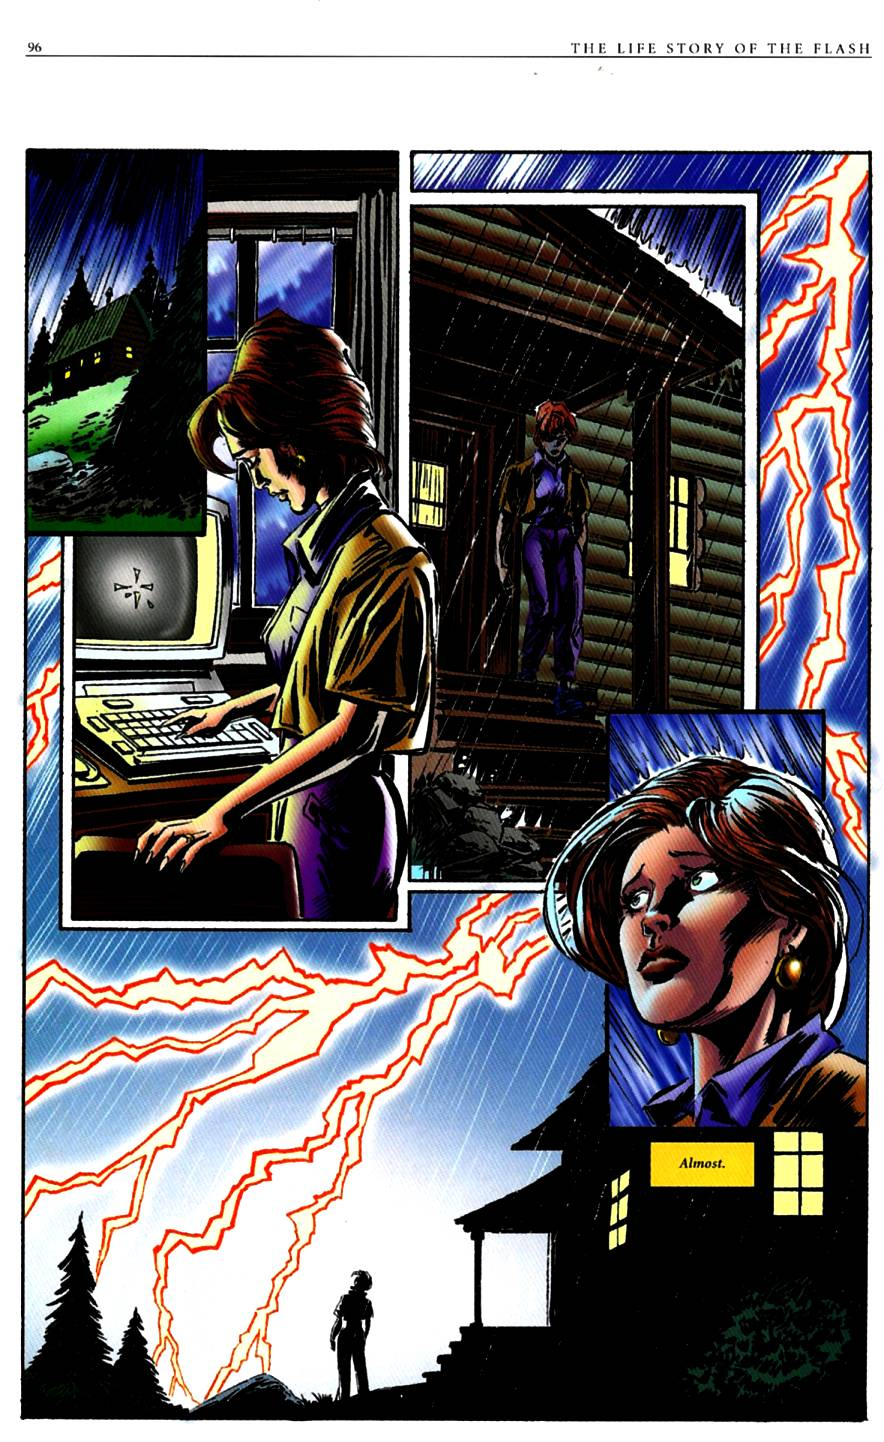 Read online The Life Story of the Flash comic -  Issue # Full - 98